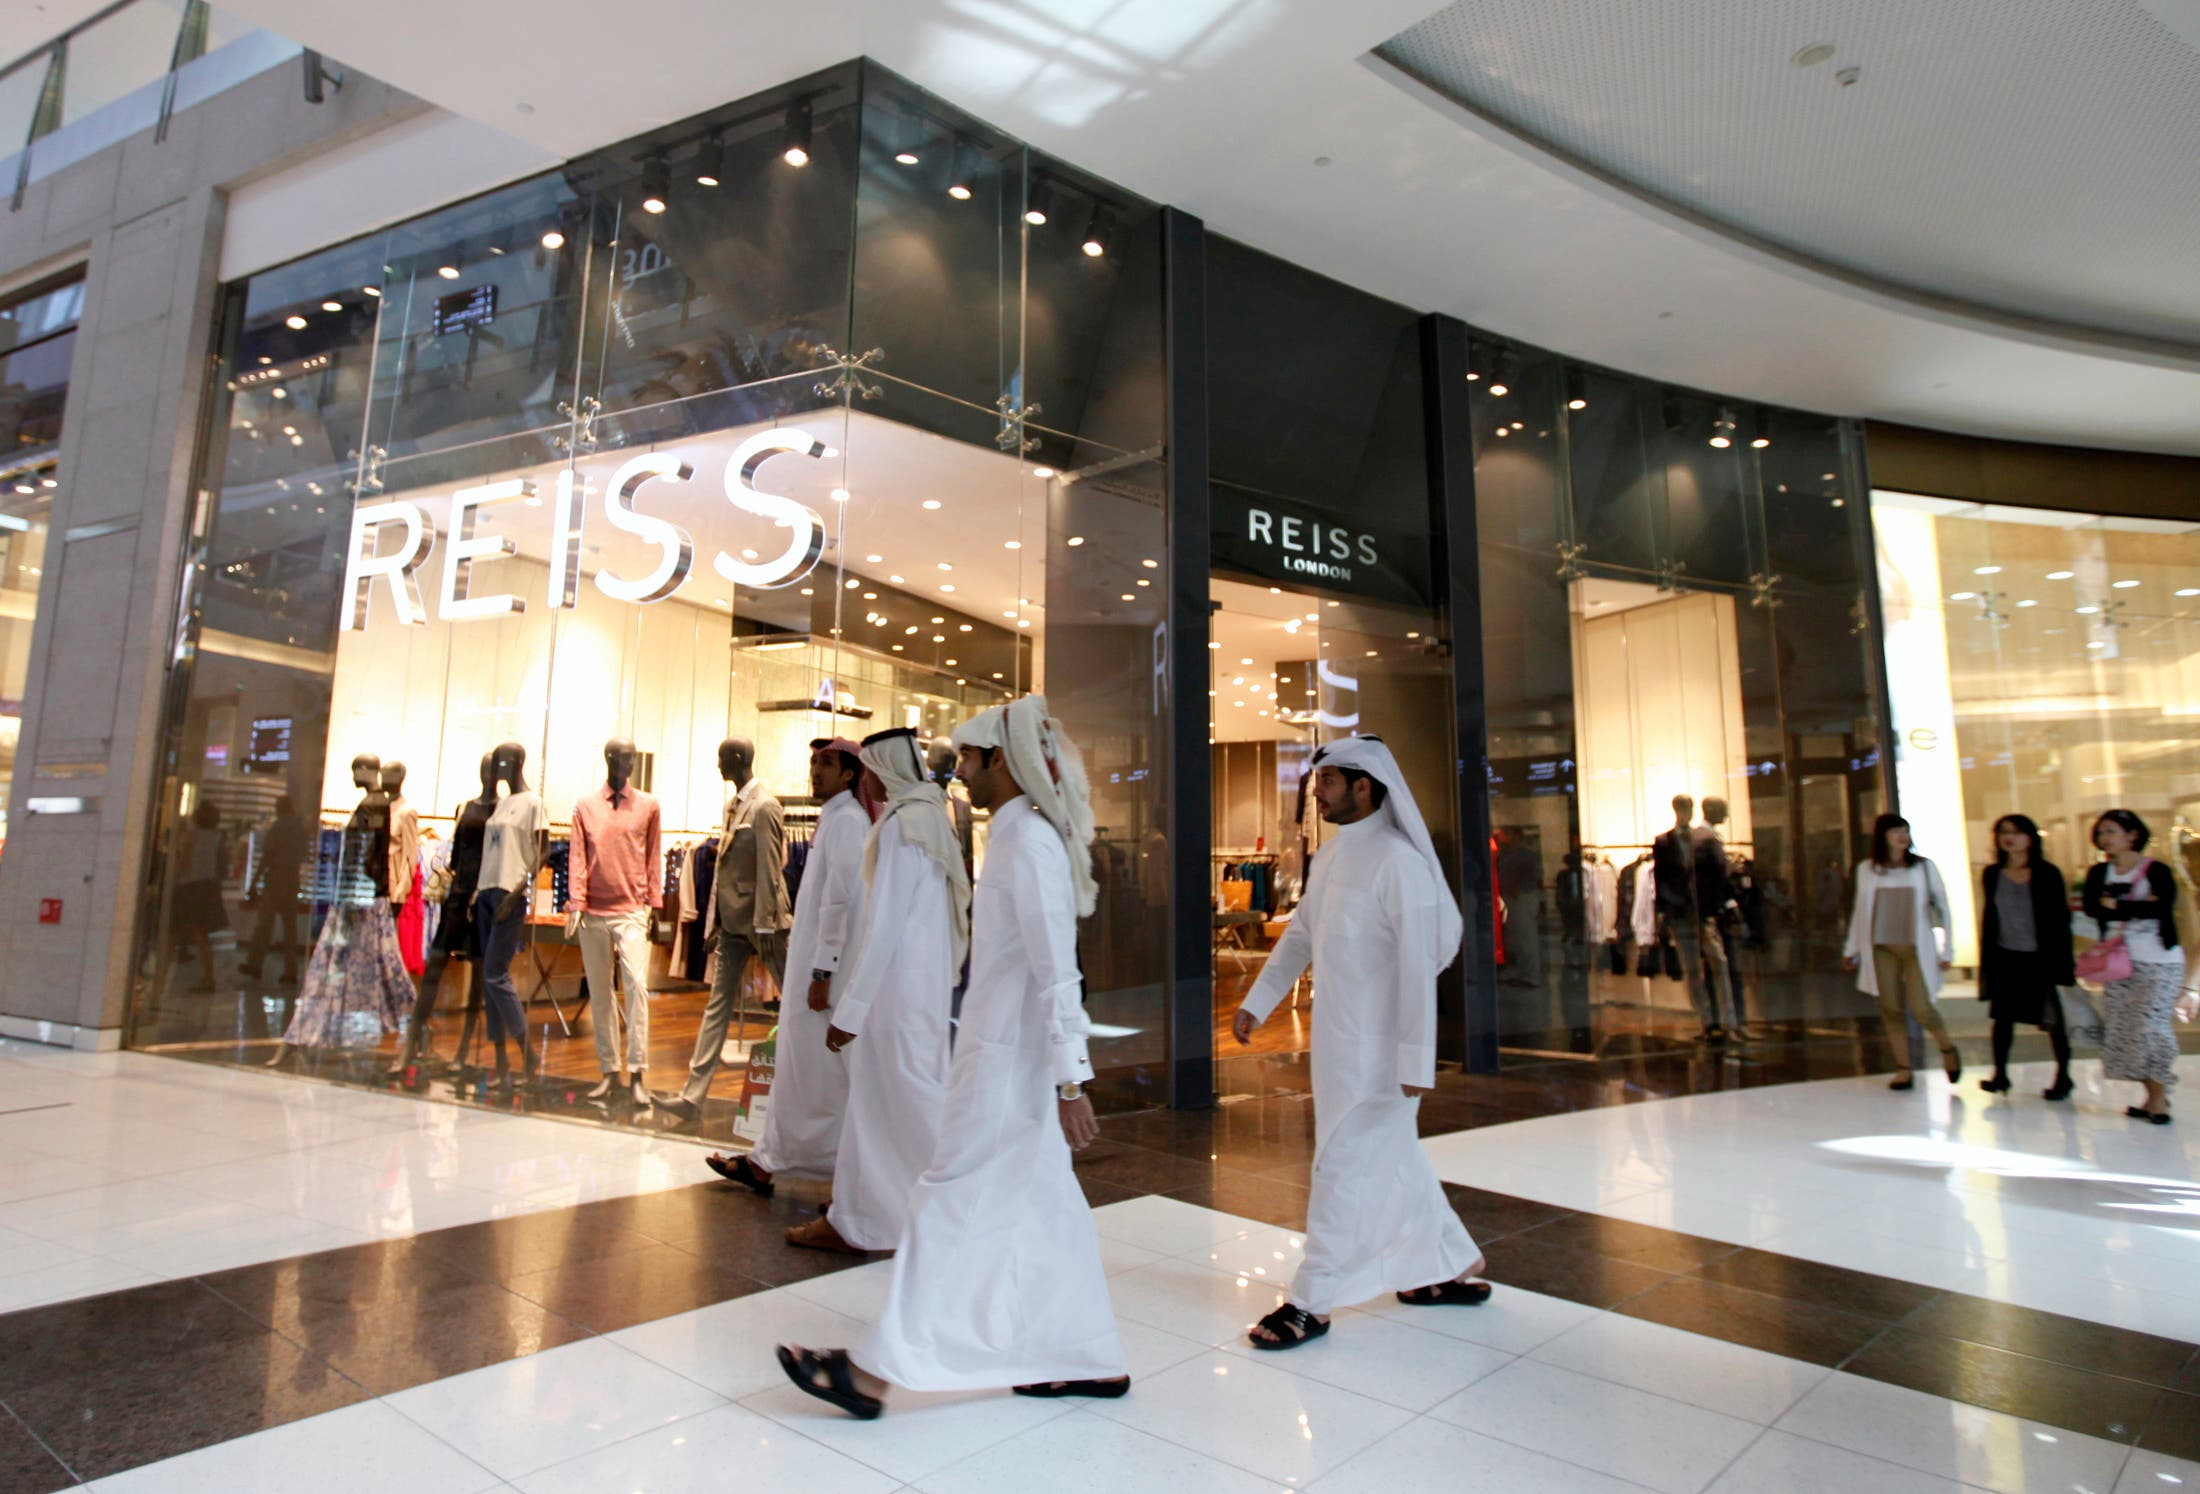 Men walk past a Reiss store at Dubai Mall shopping center in Dubai, February 5, 2012. (Reuters)